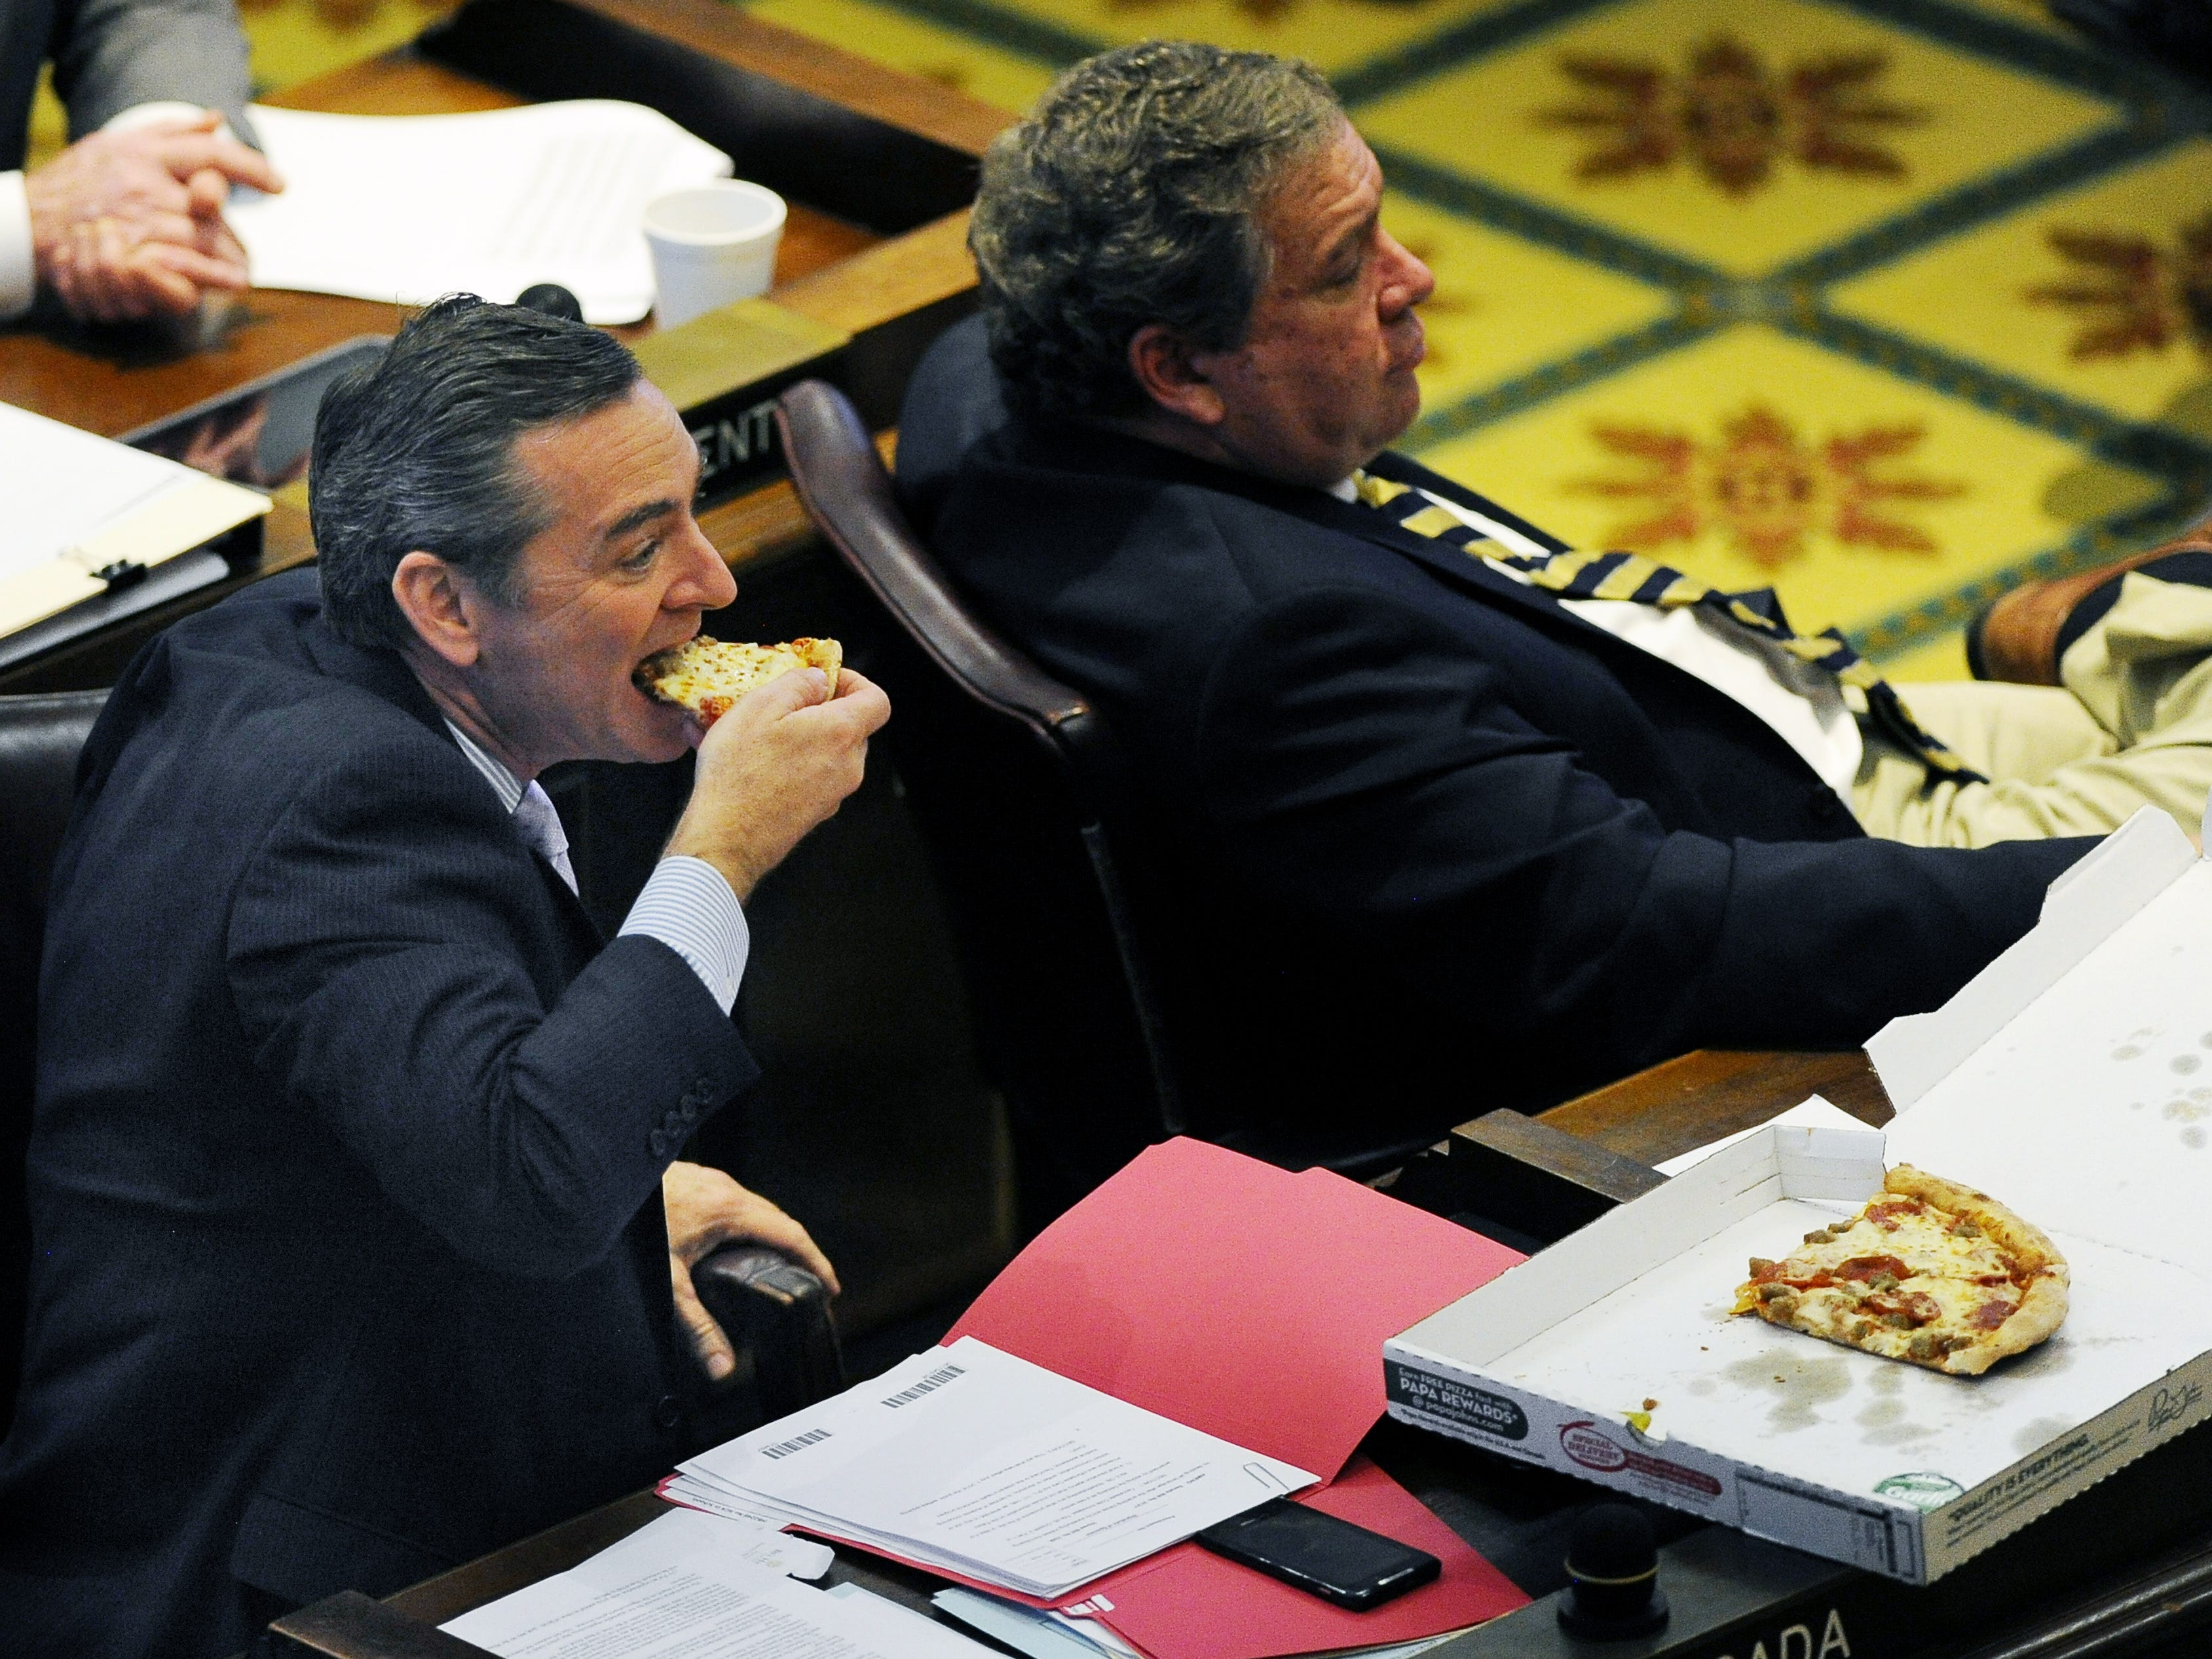 Rep. Glen Casada, left, eats pizza during a House of Representatives session at the Capitol on March 13, 2014.